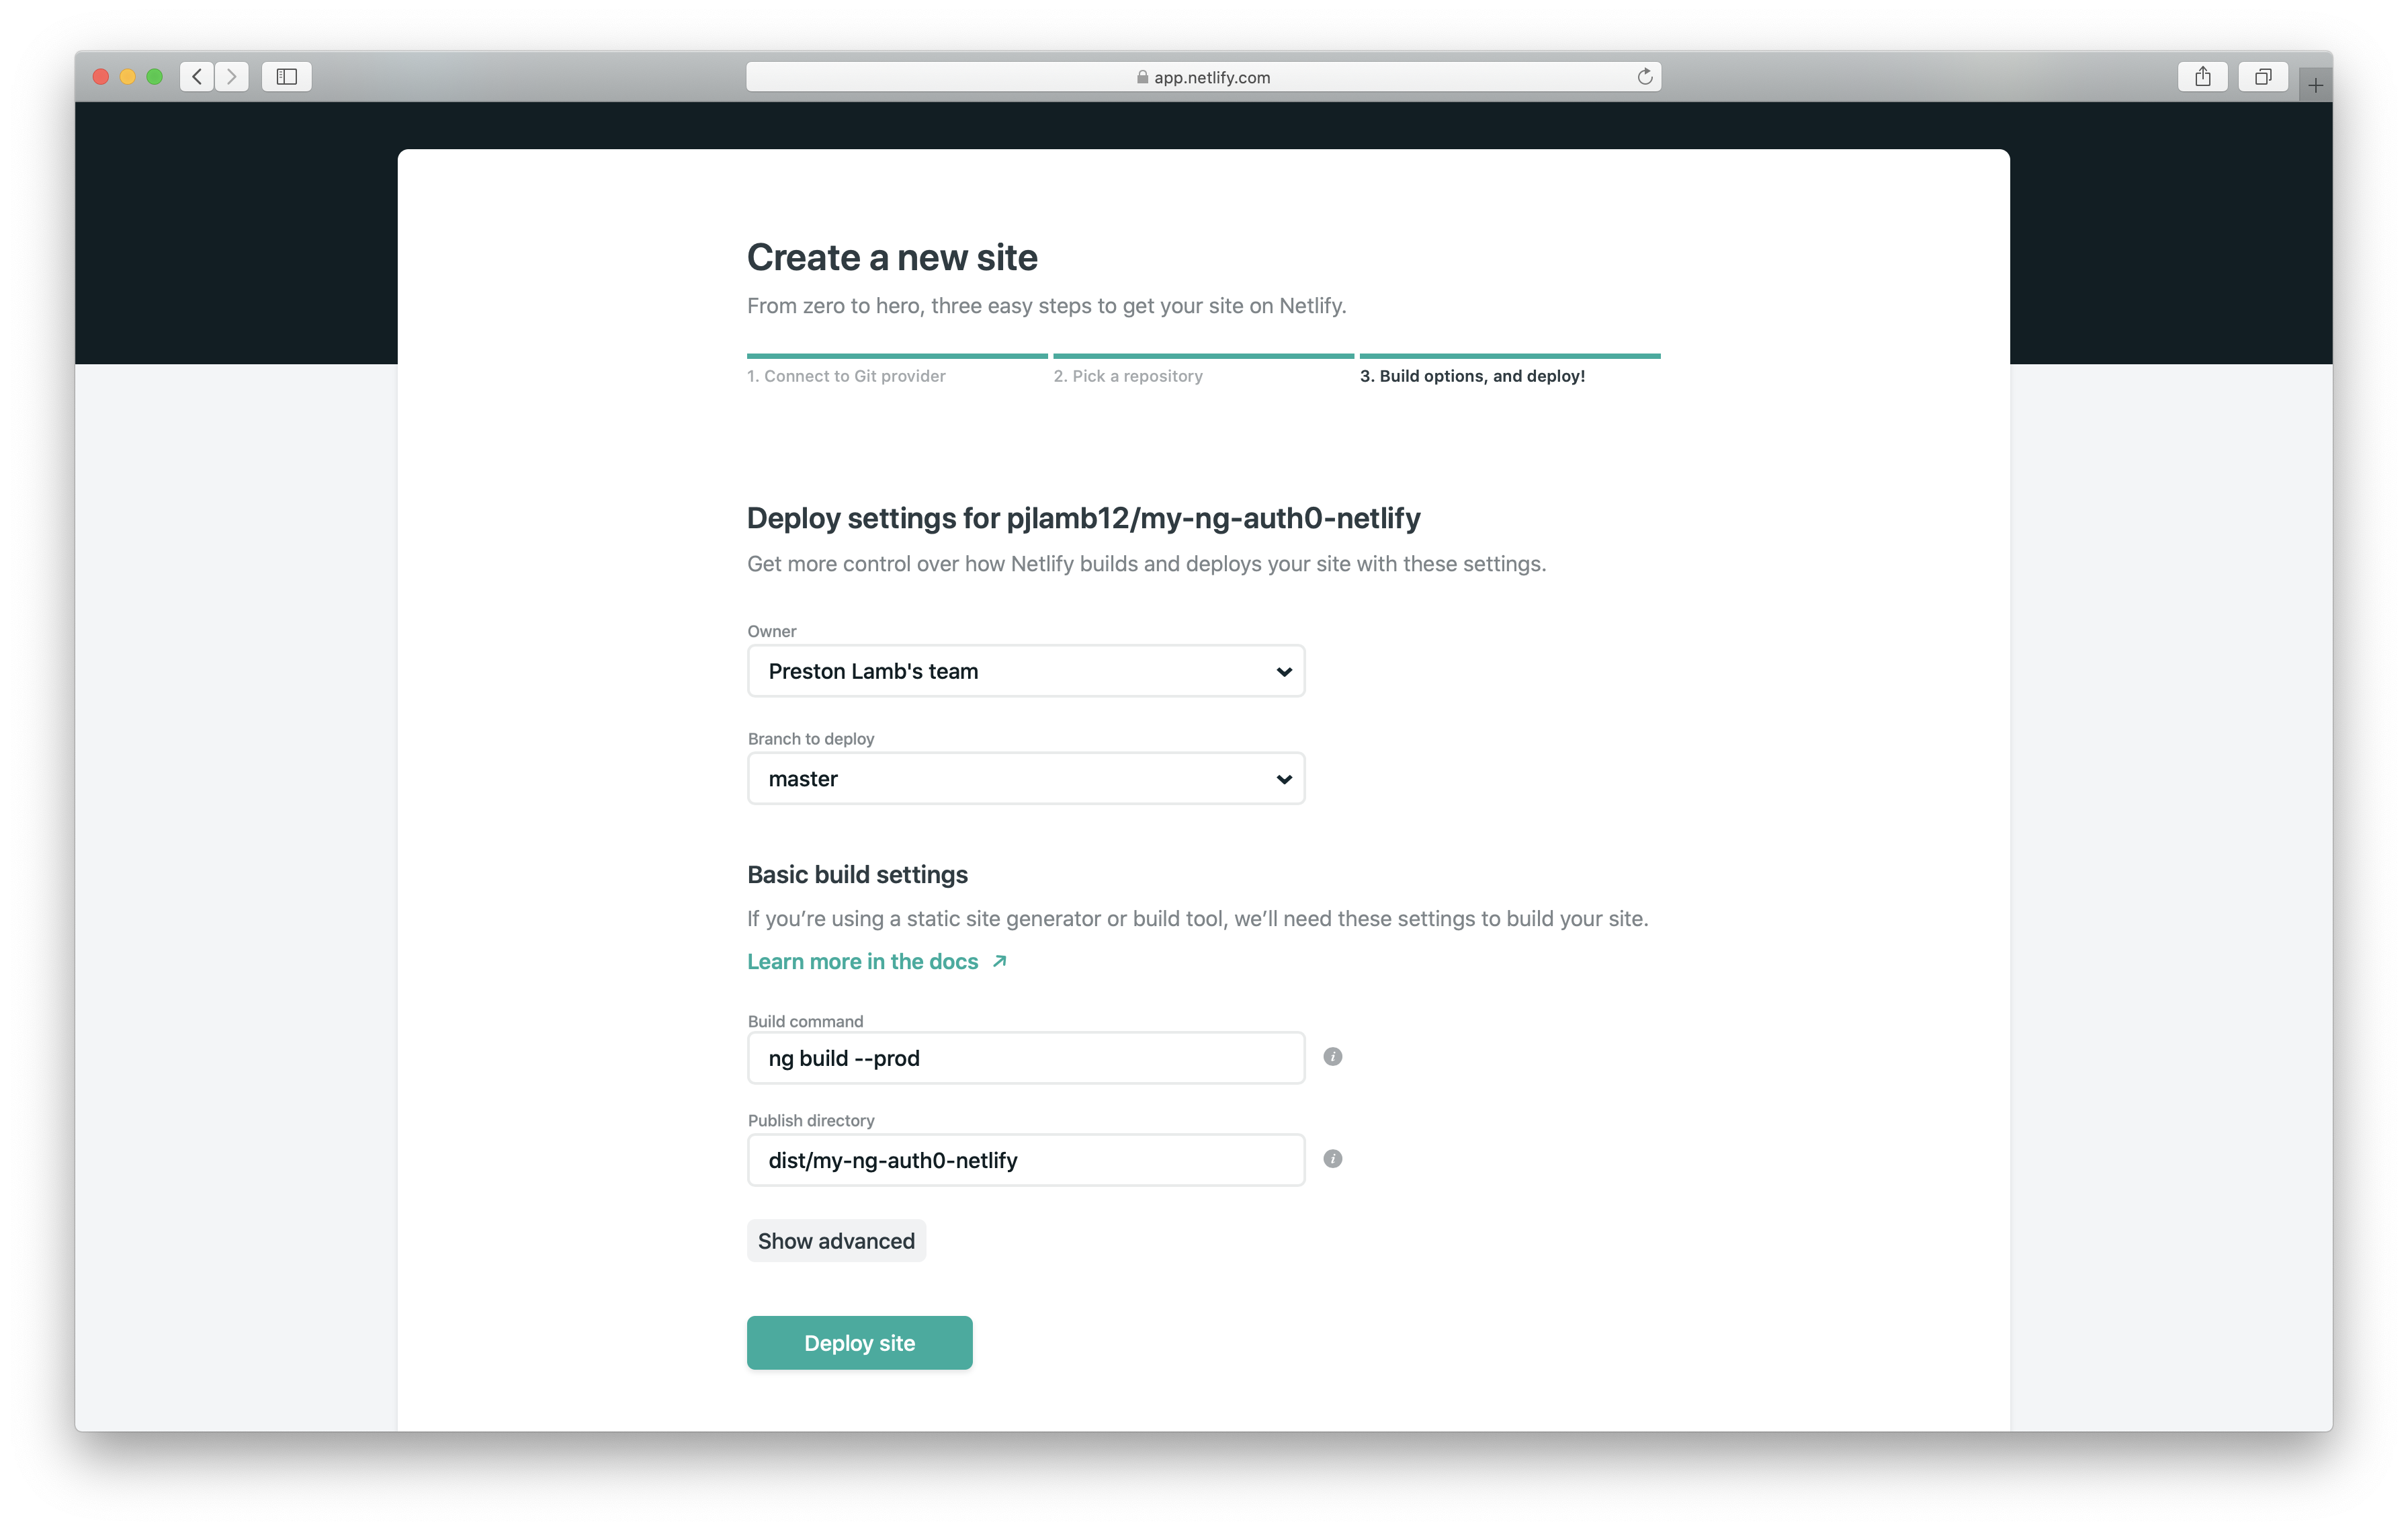 Choose the GitHub repository for Netlify